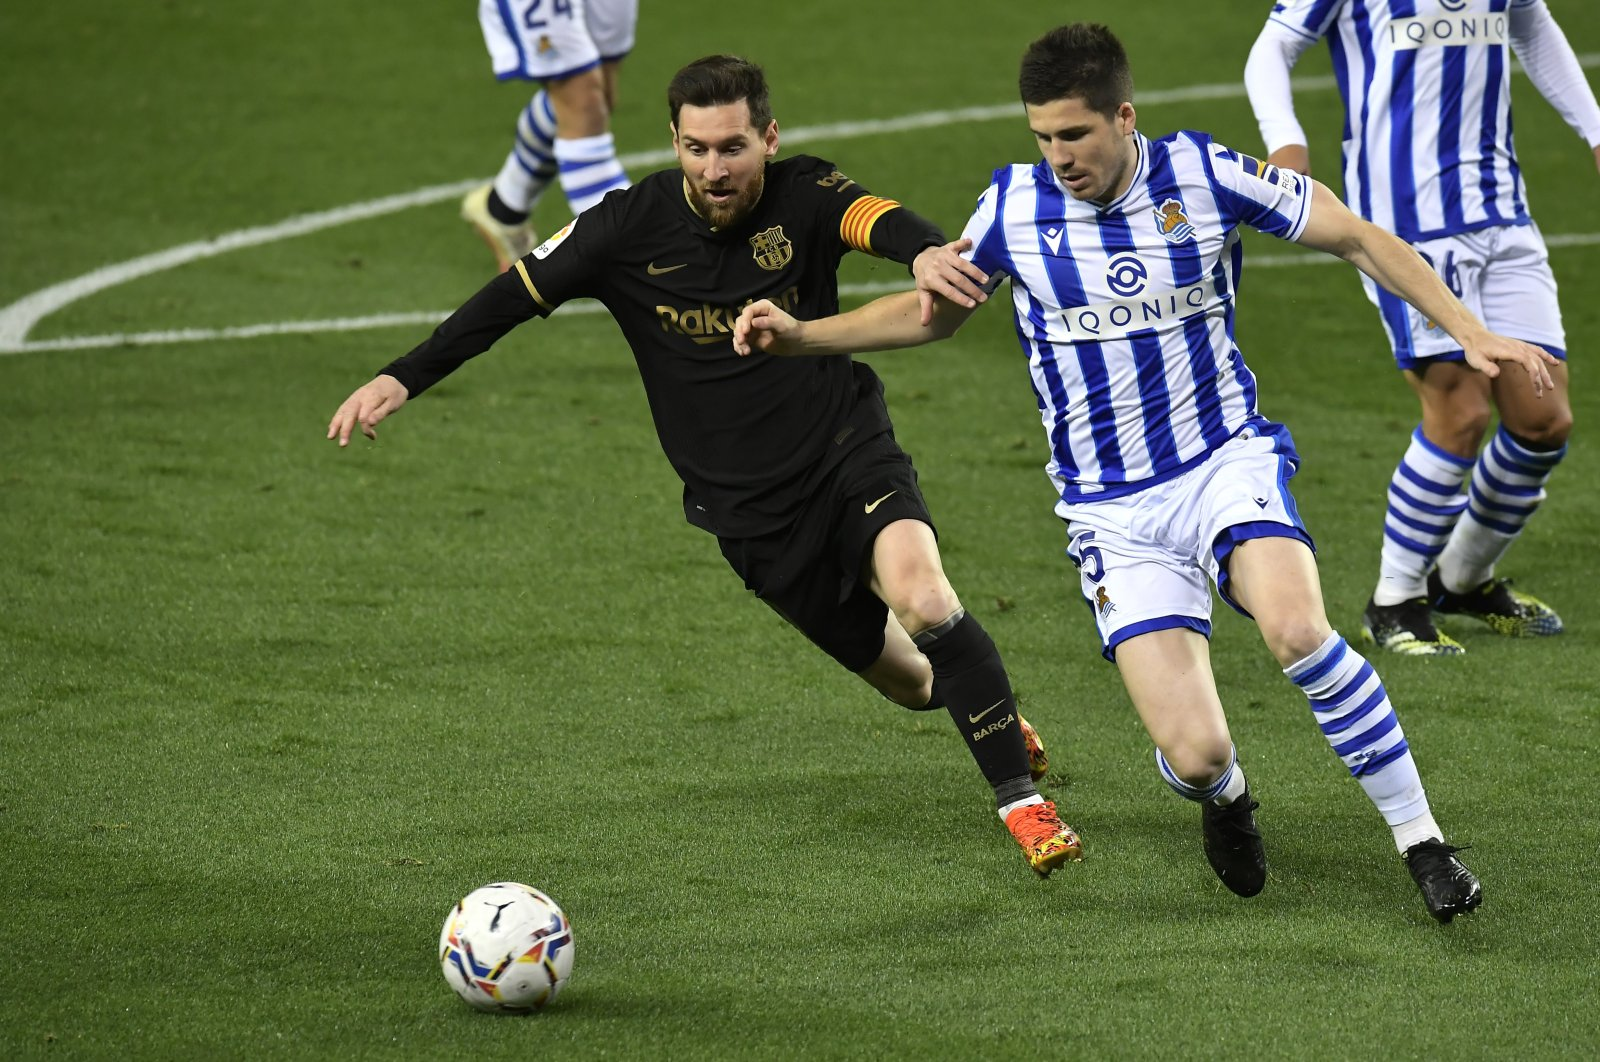 Barcelona's Lionel Messi (L) fights for the ball against Real Sociedad's Igor Zubeldia during the Spanish La Liga match at Reale Arena stadium, San Sebastian, Spain, March. 21, 2021. (AP Photo)